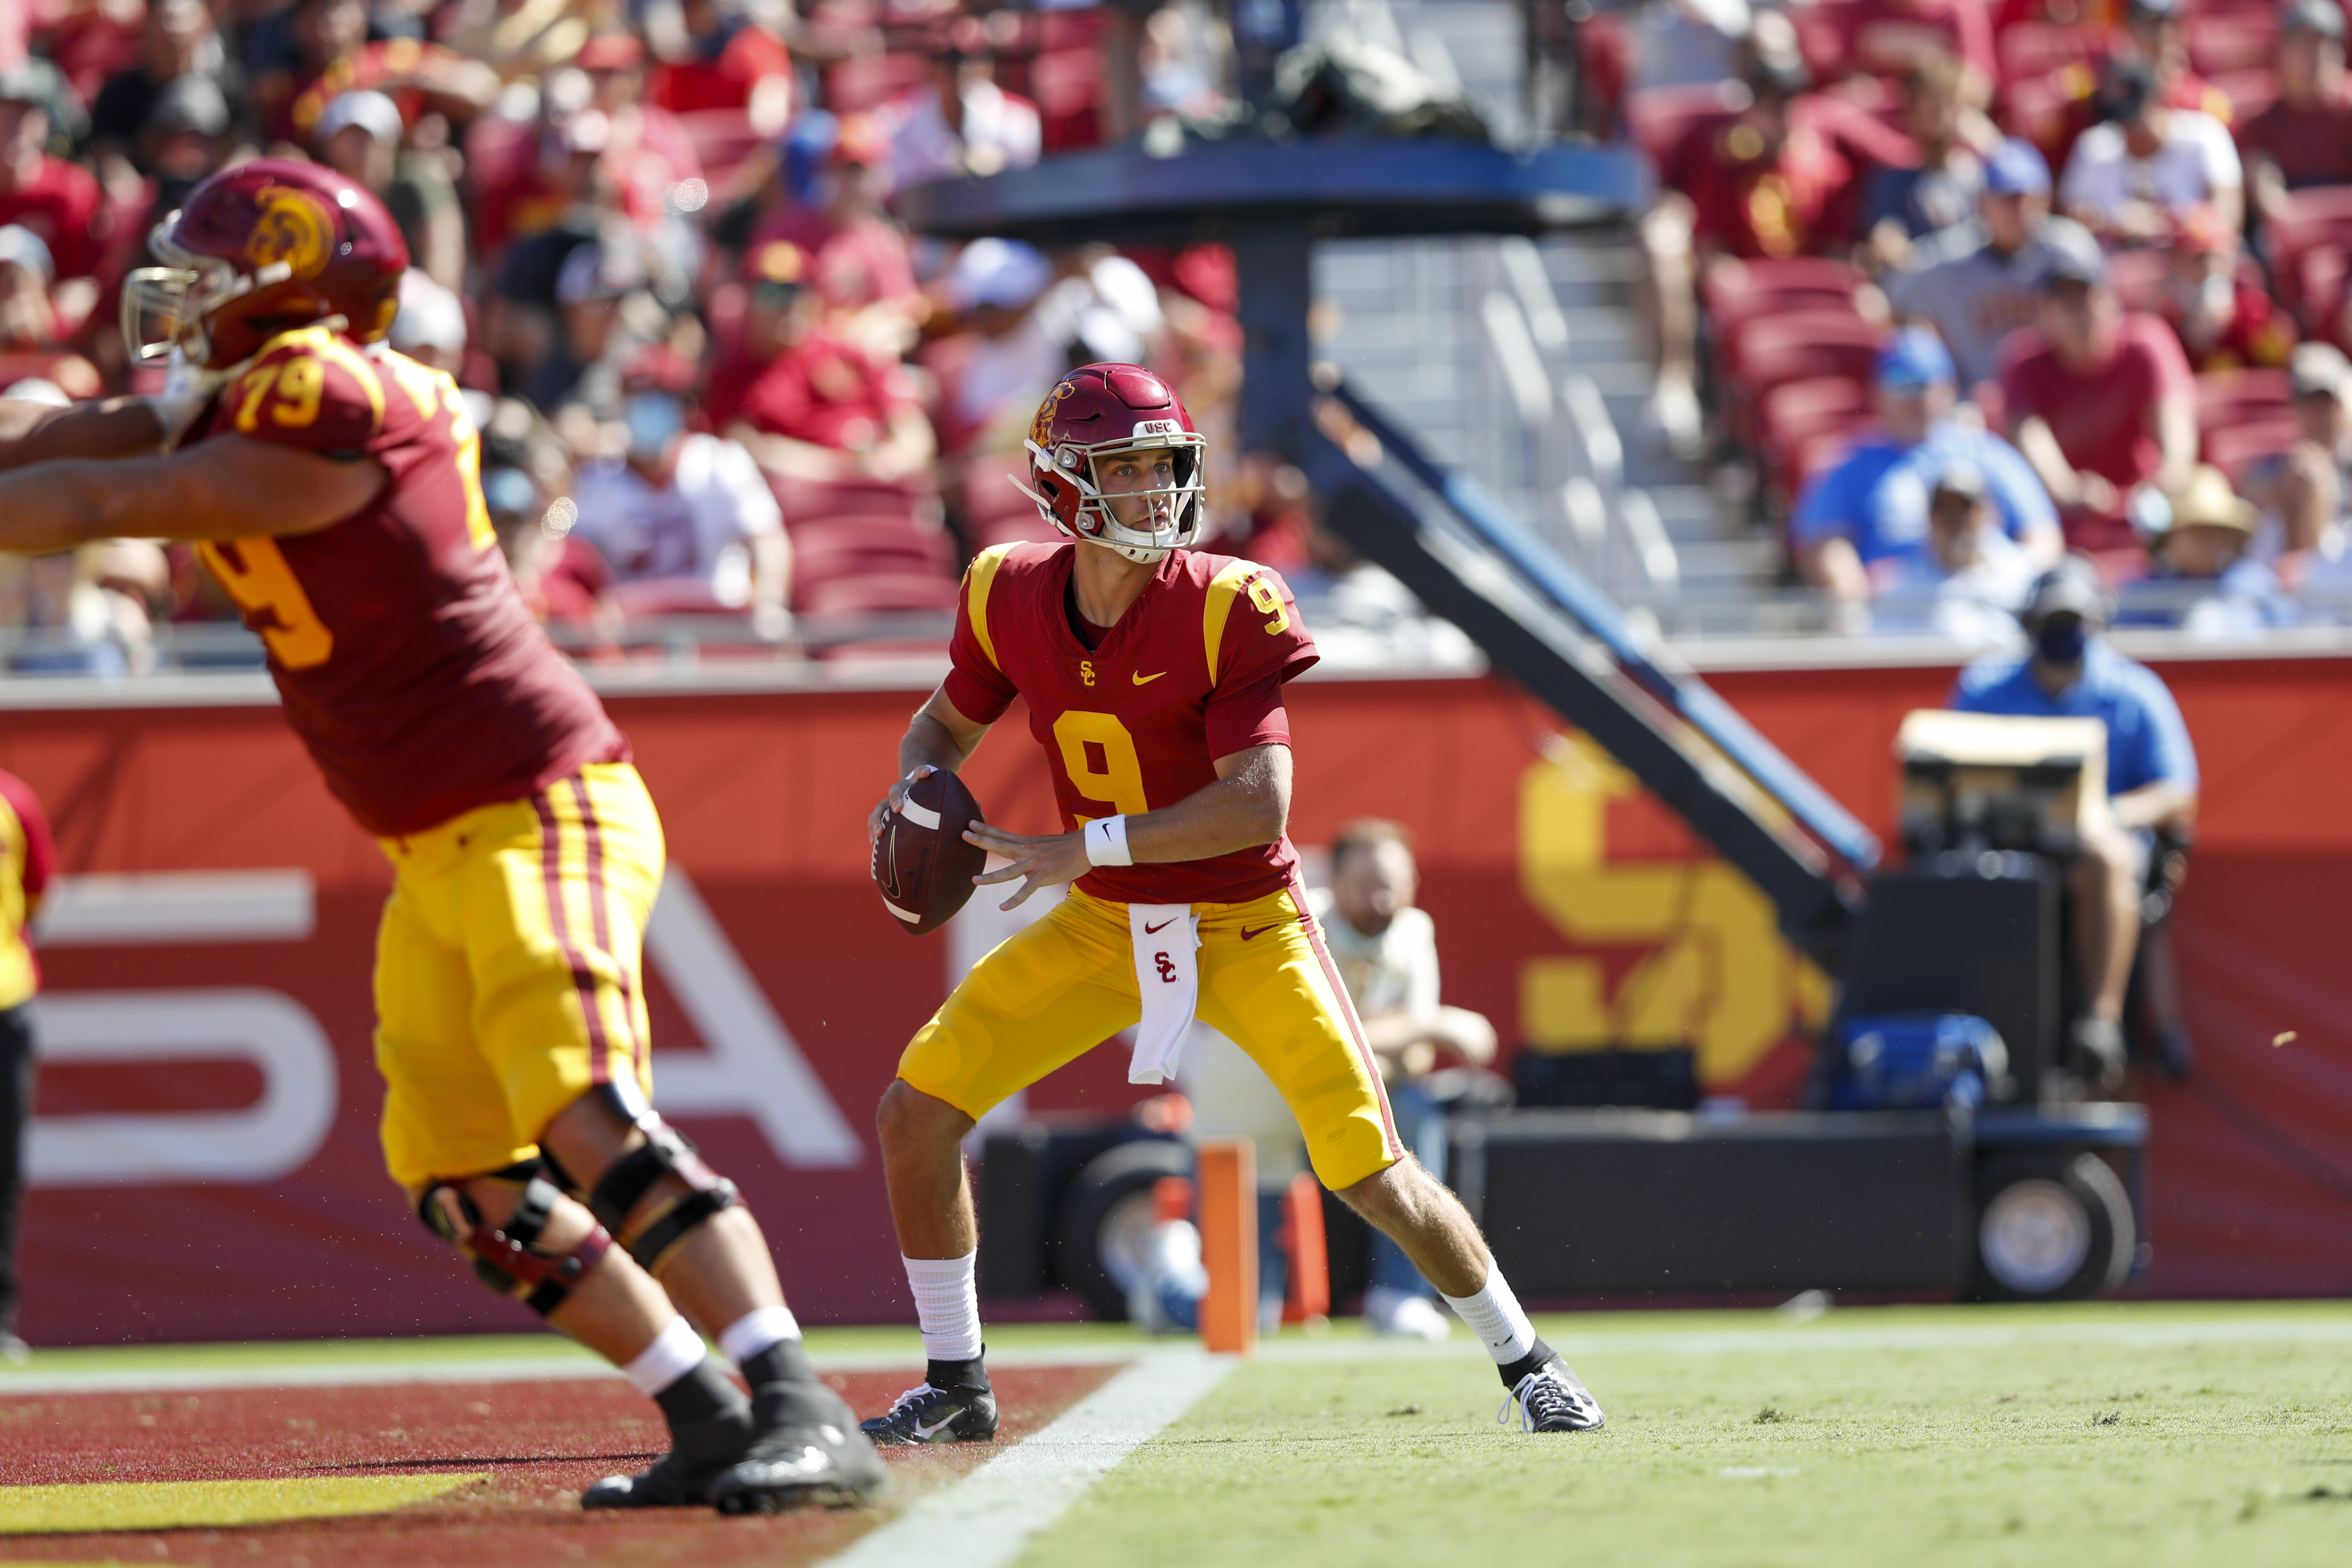 USC Trojans quarterback Kedon Slovis during a college football game between San Jose State Spartans against the USC Trojans on September 4, 2021, at United Airlines Field at The Los Angeles Memorial Coliseum in Los Angeles, CA.